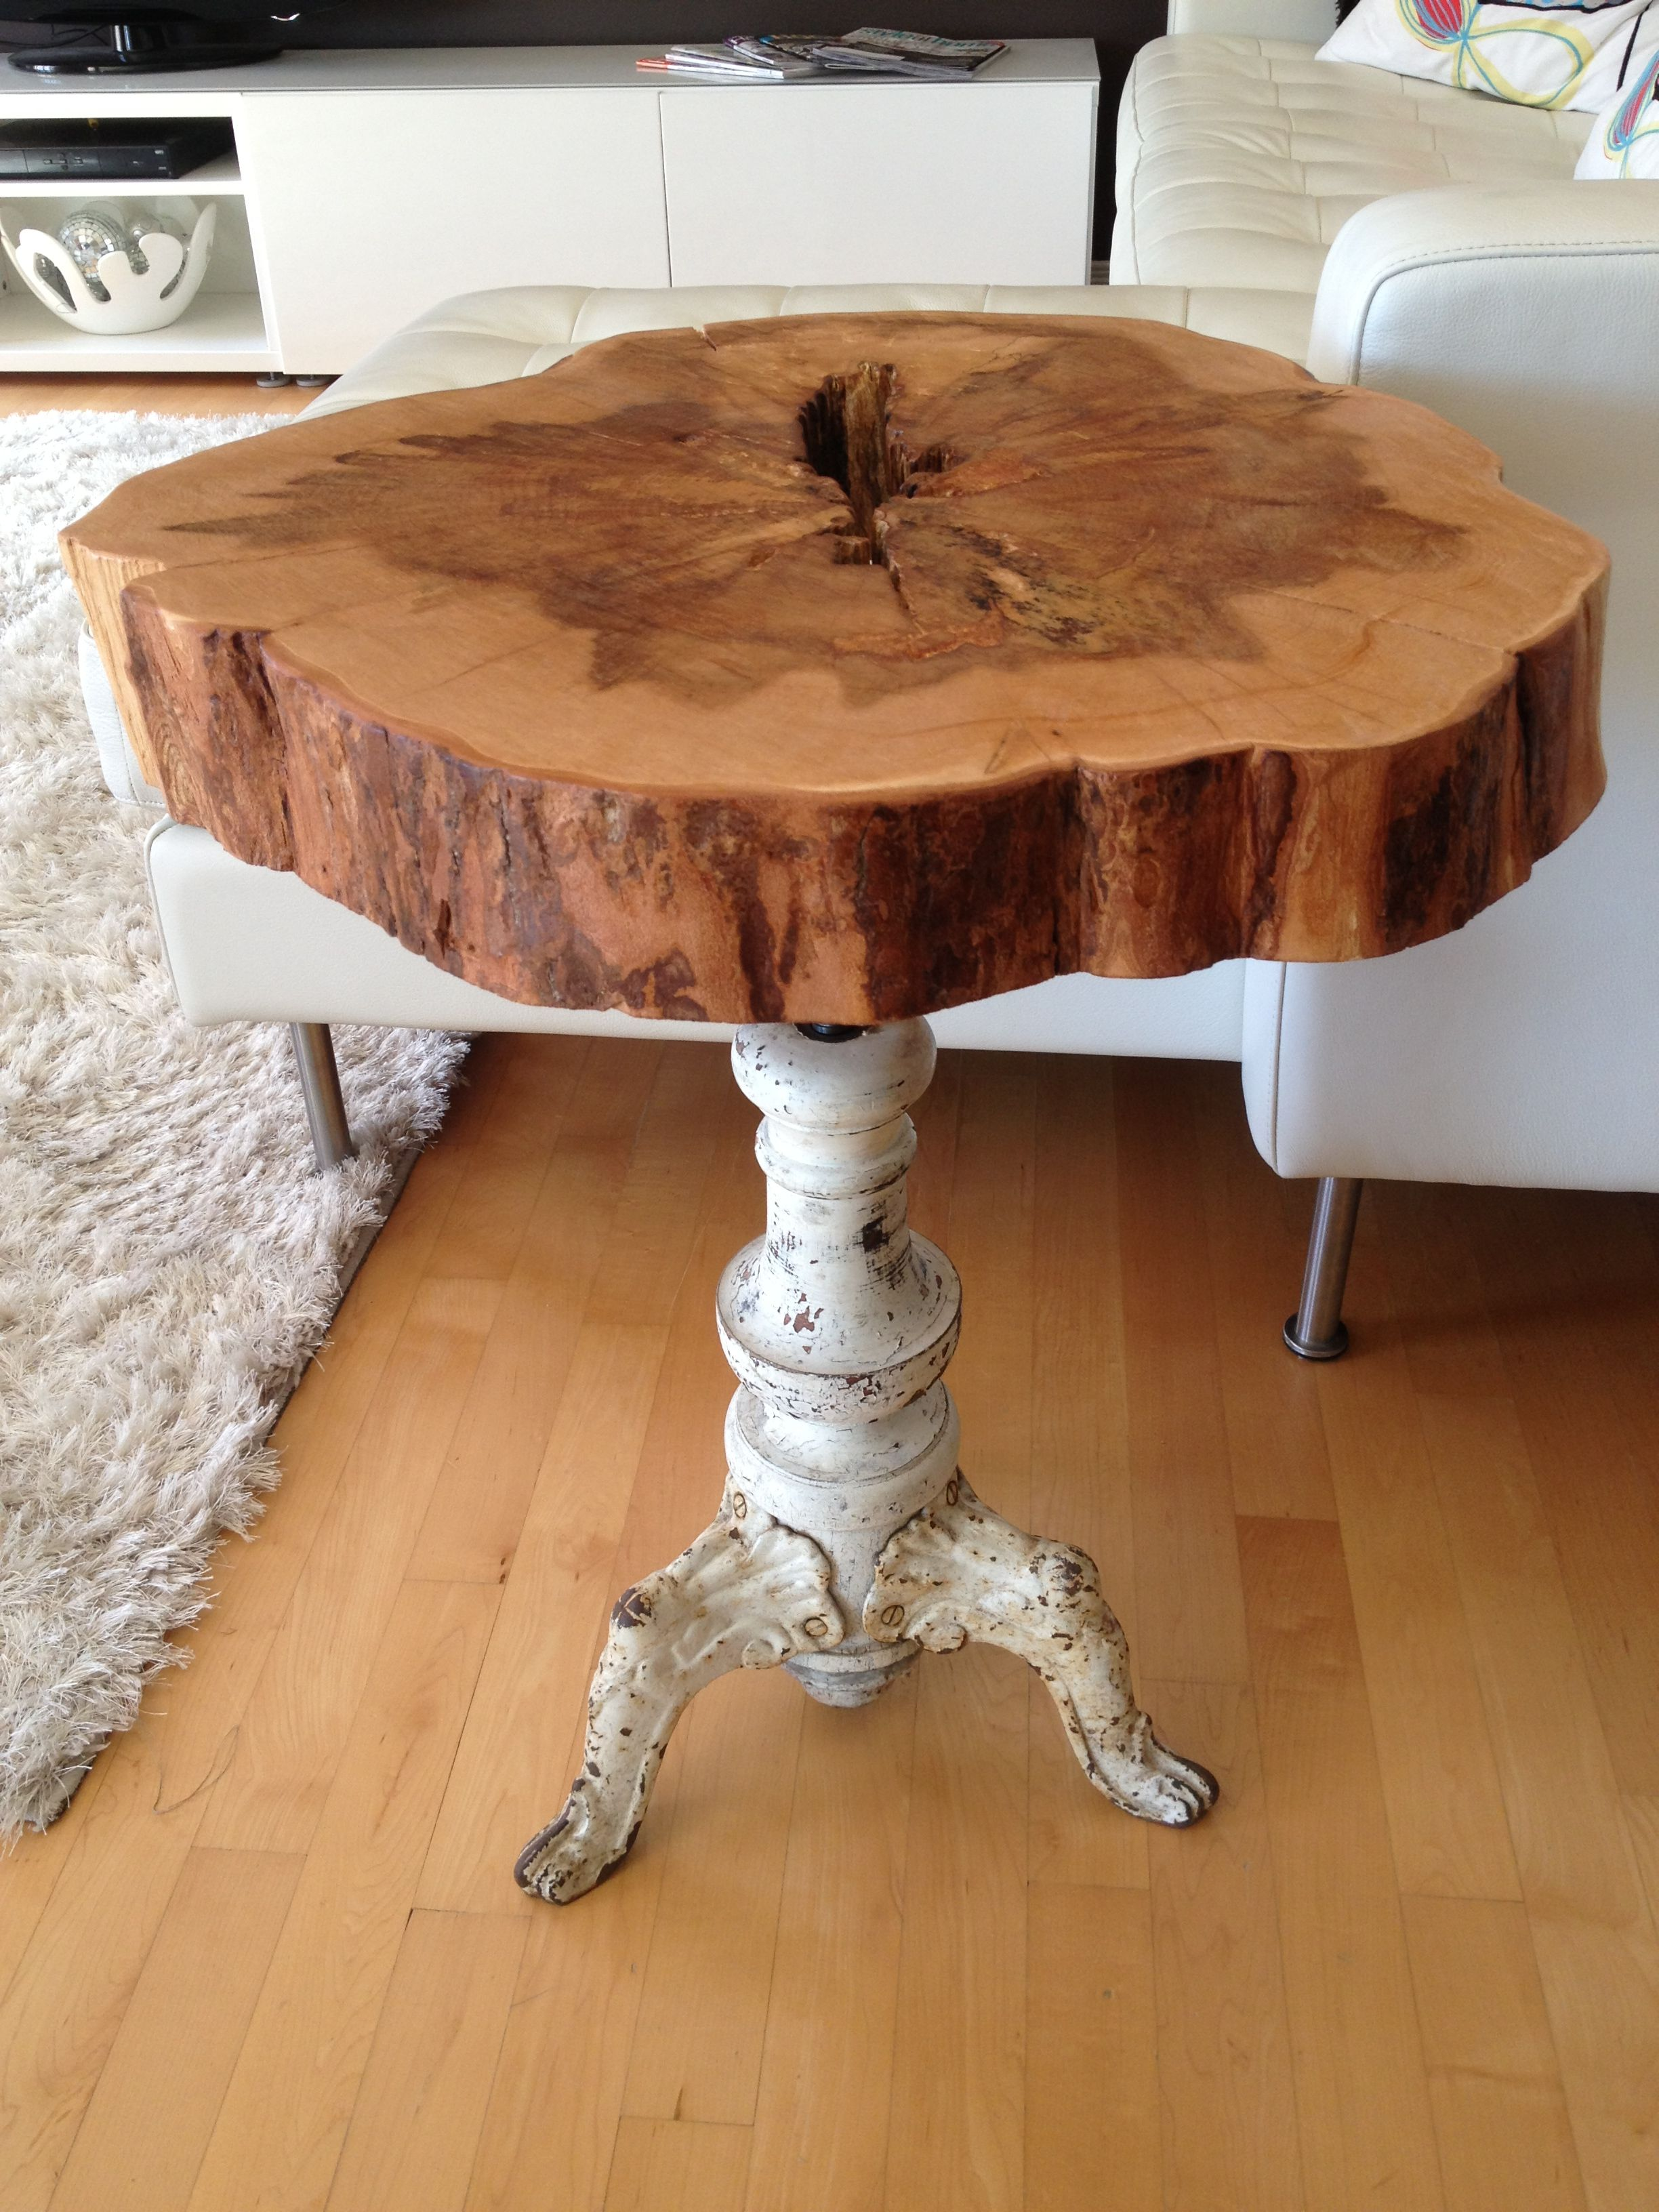 diy tree stump table ideas how make them accent legs using recycled materials for why not ikea shelves white storage box glass chest drawers hairpin leg end square outdoor